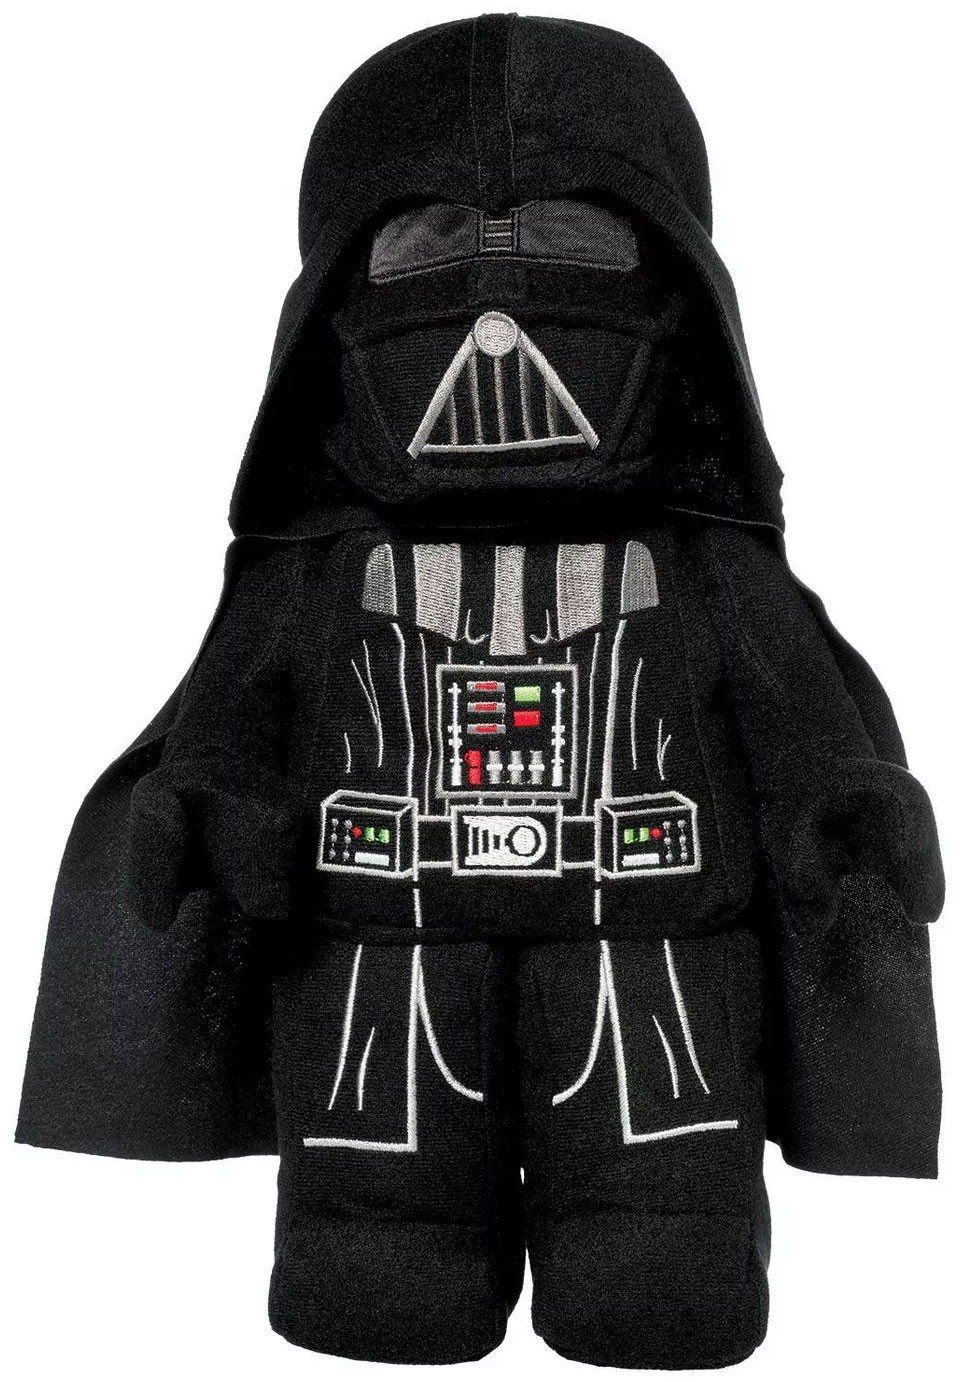 - LEGO Star Wars Darth Vader Plush 11964504909 EBay